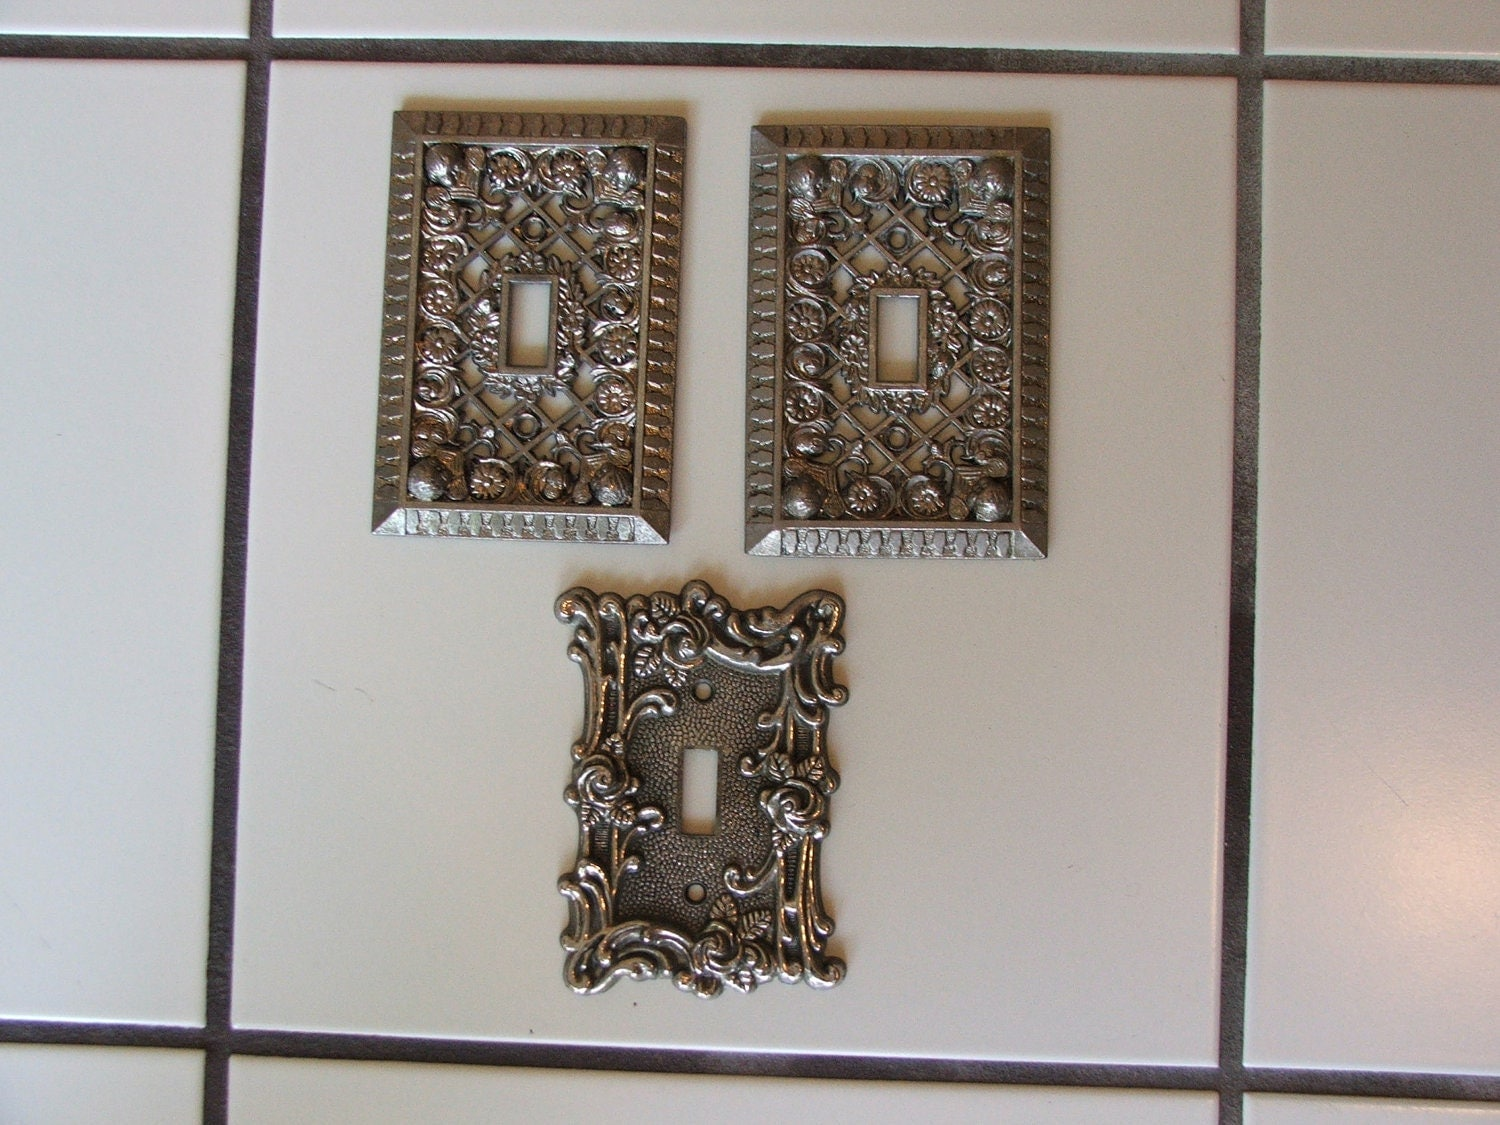 Vintage Ornate Metal Light Switch Cover Plates By